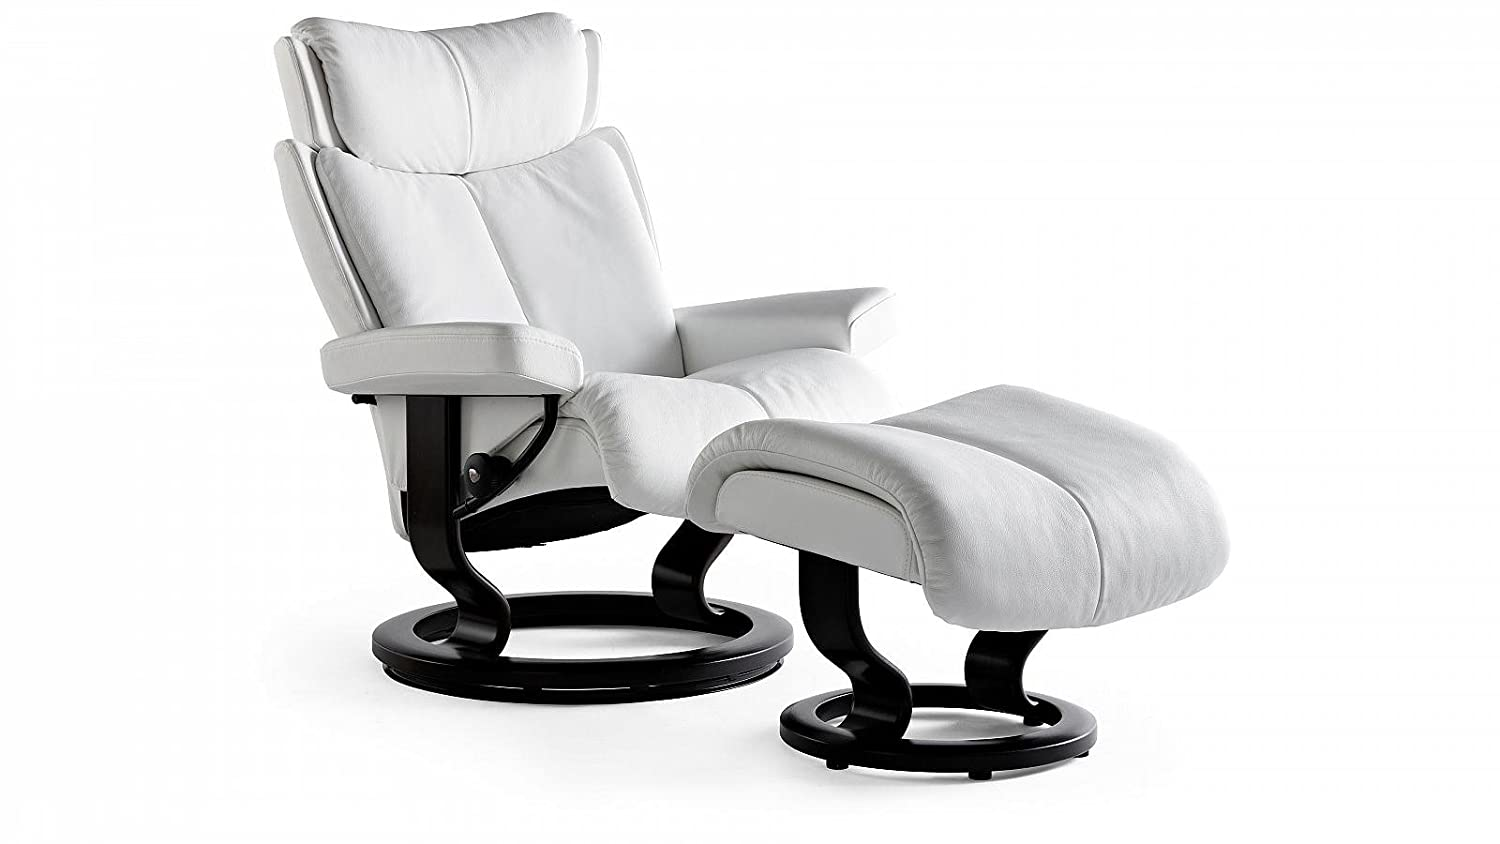 Stressless Magic Sessel Mit Hocker S Weiss Gunstig Kaufen